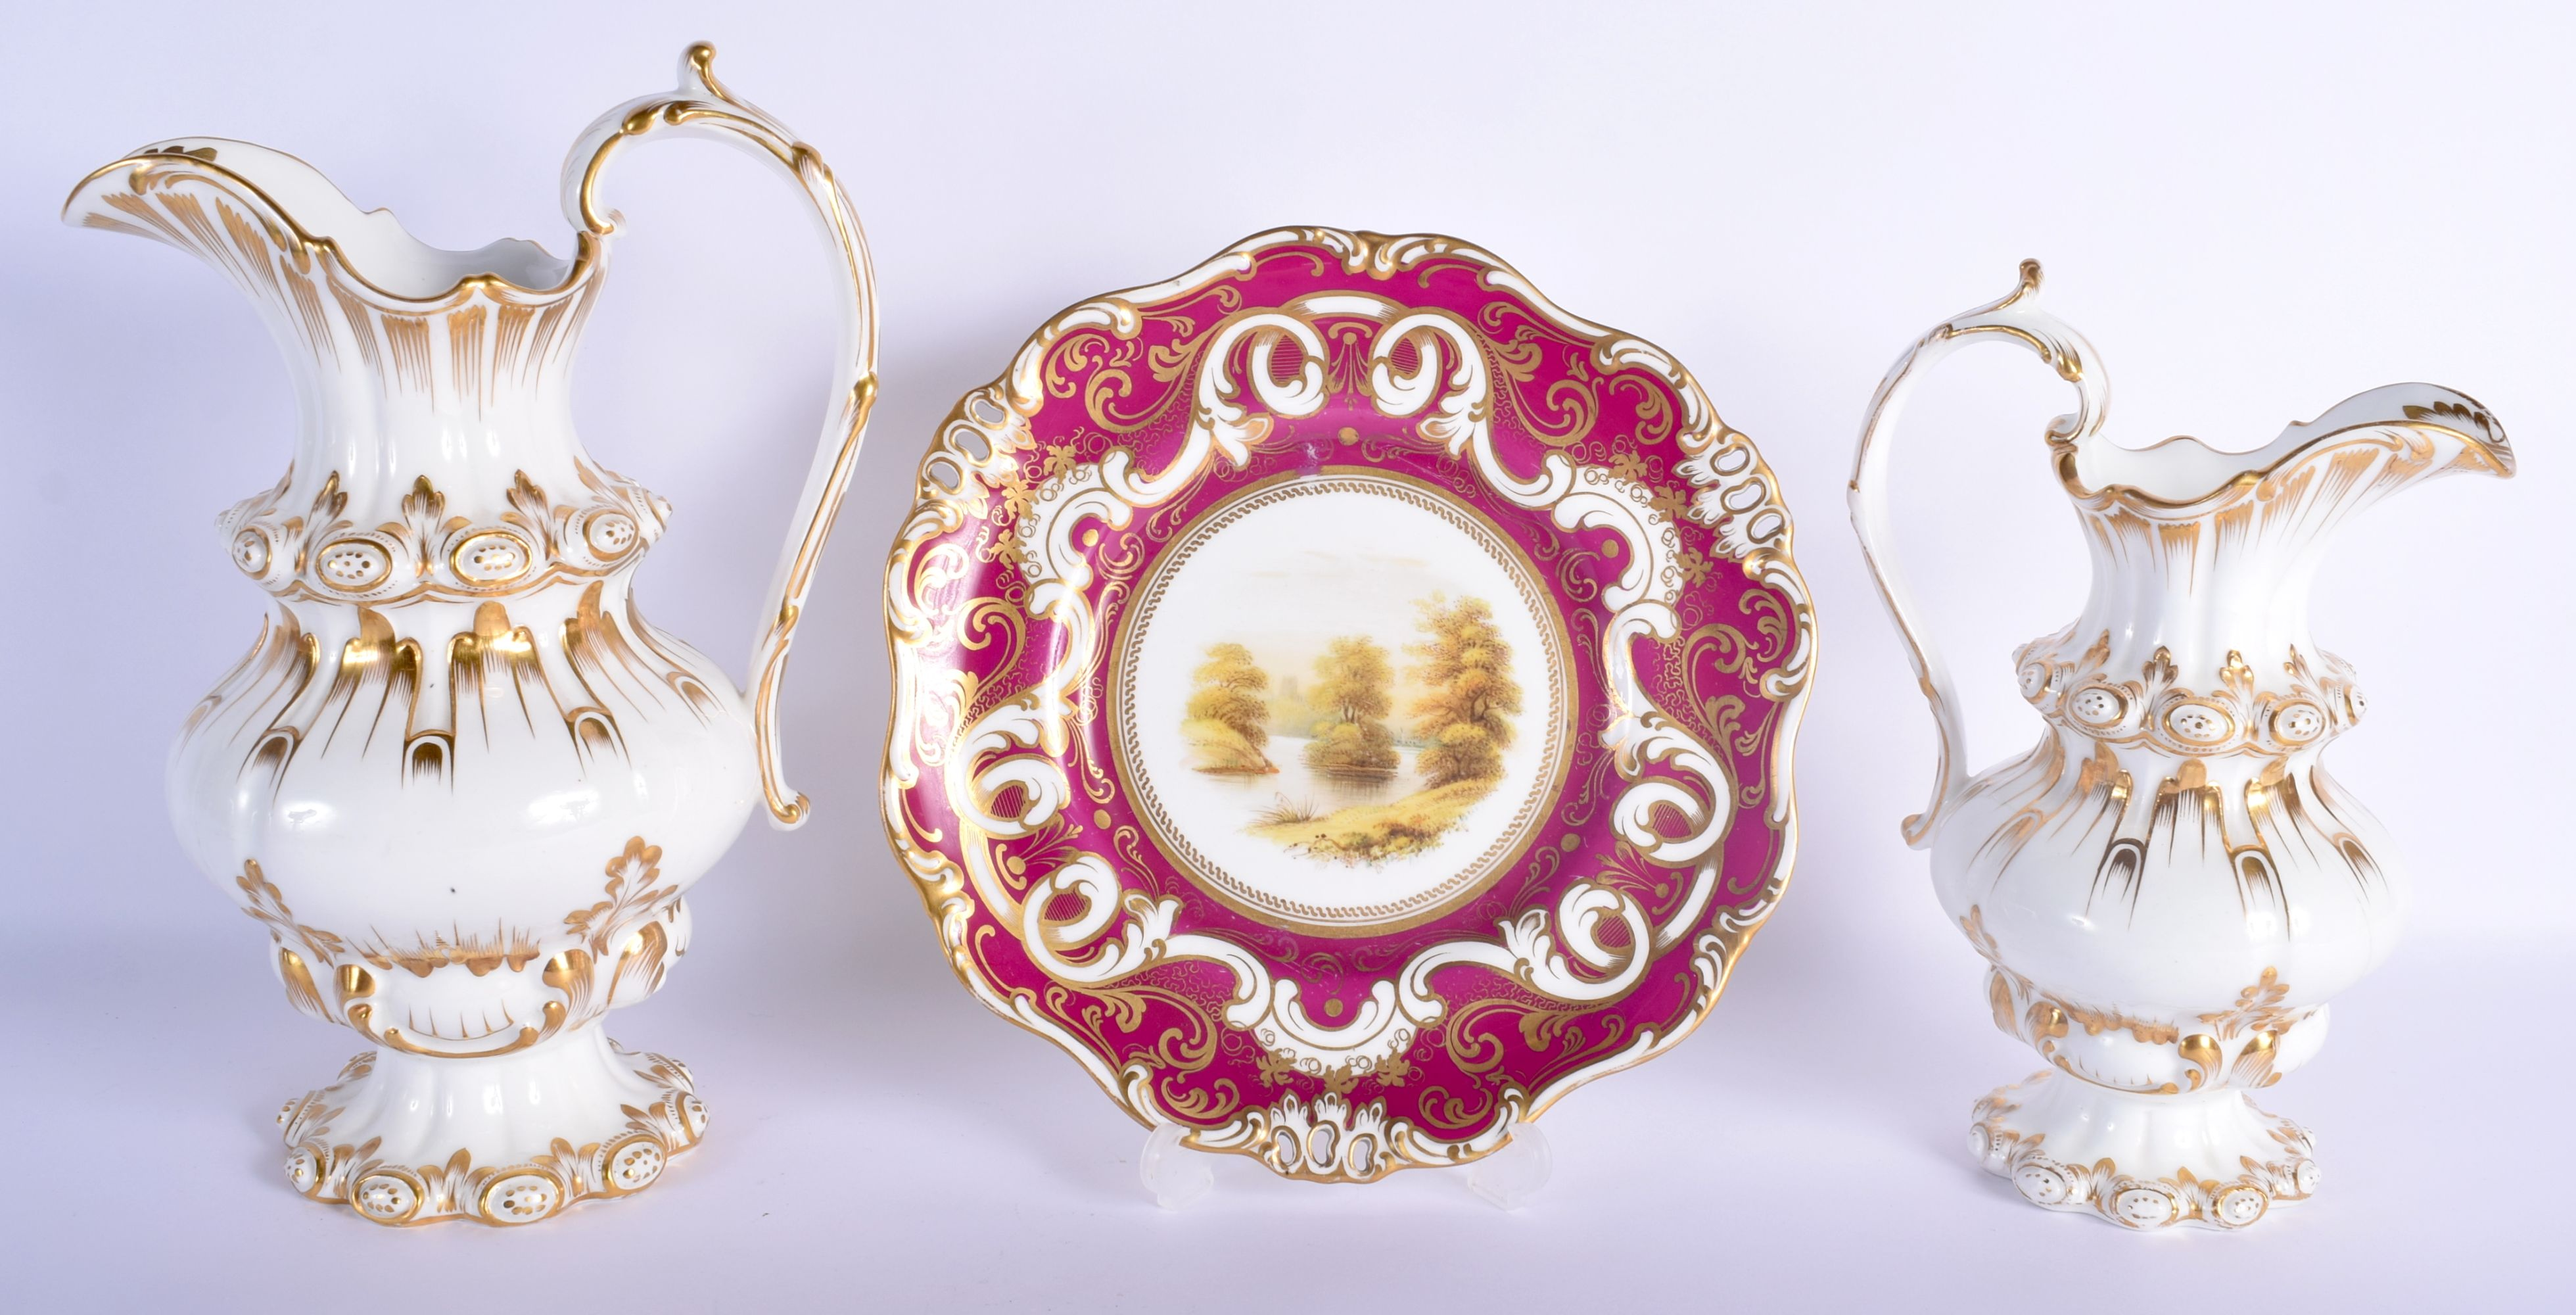 A LARGE NEAR PAIR OF EARLY 19TH CENTURY ENGLISH PORCELAIN JUGS of unusual form, together with a Dave